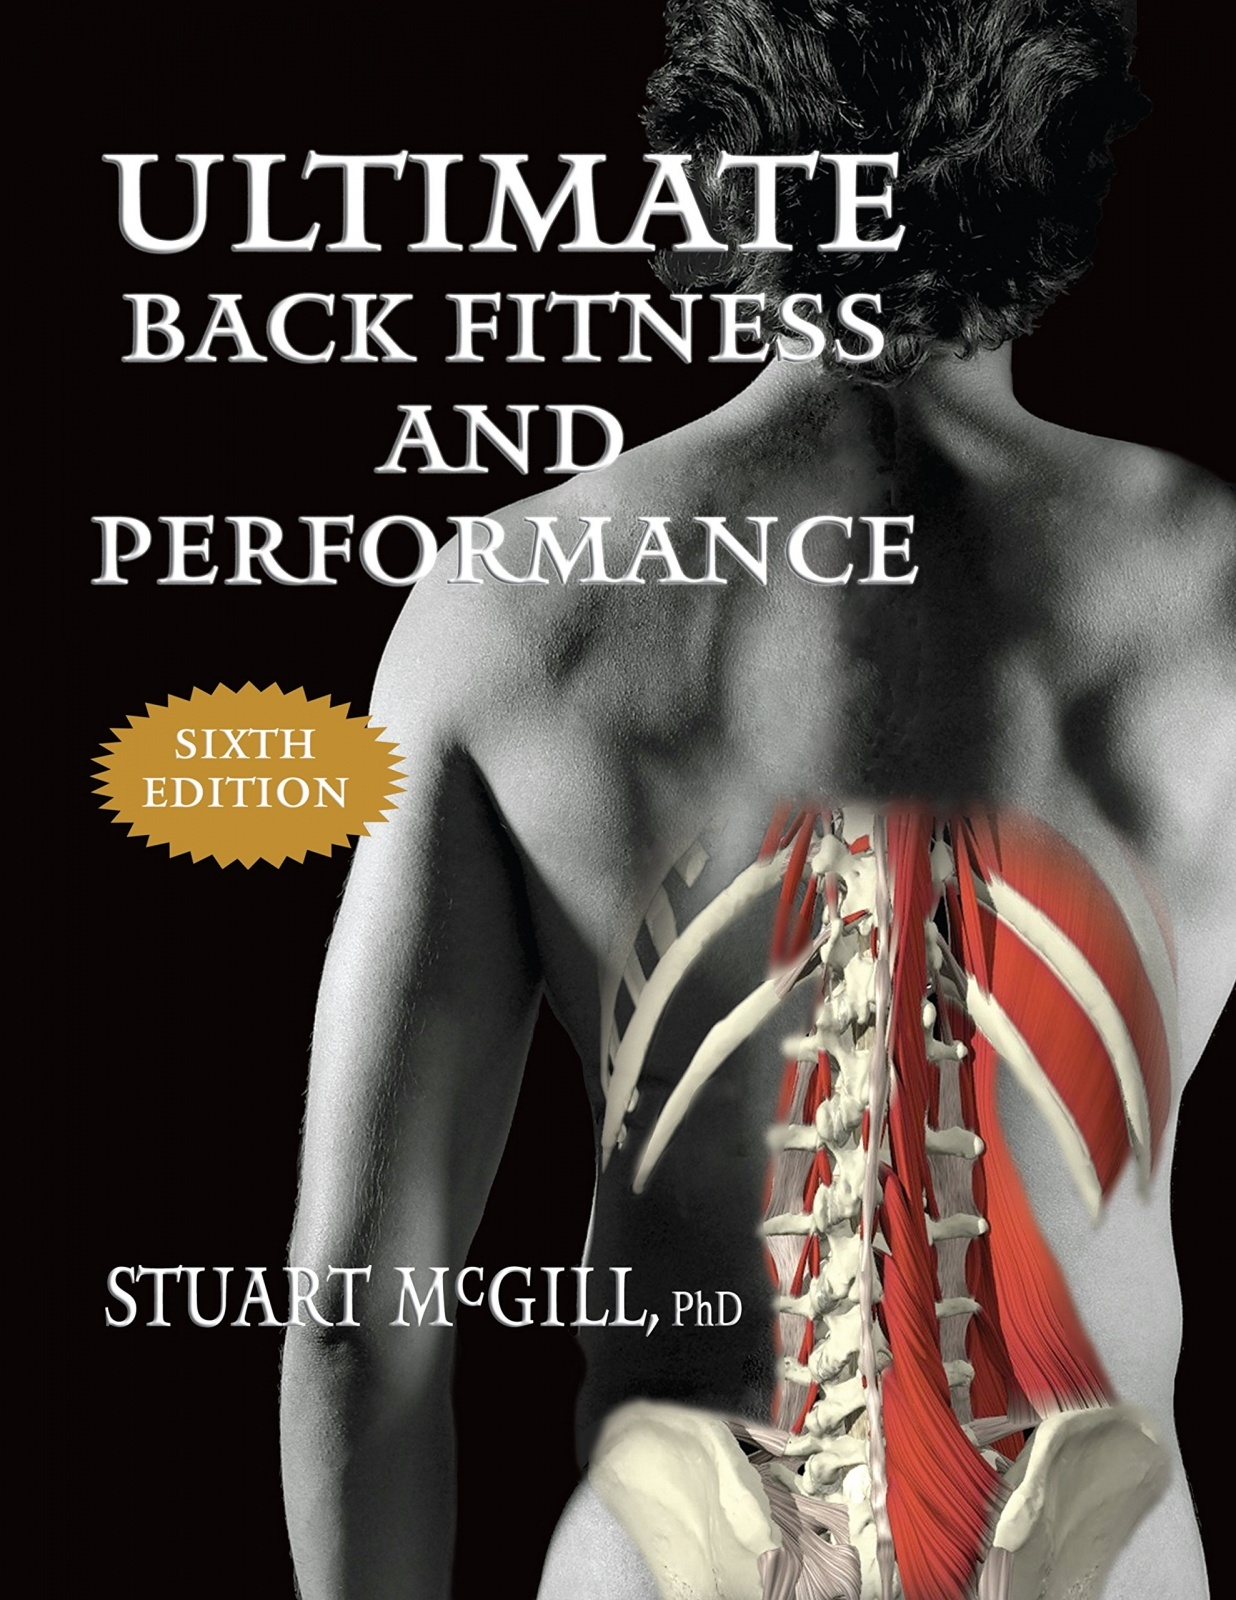 Ultimate Back Fitness and Performance Sixth Edition